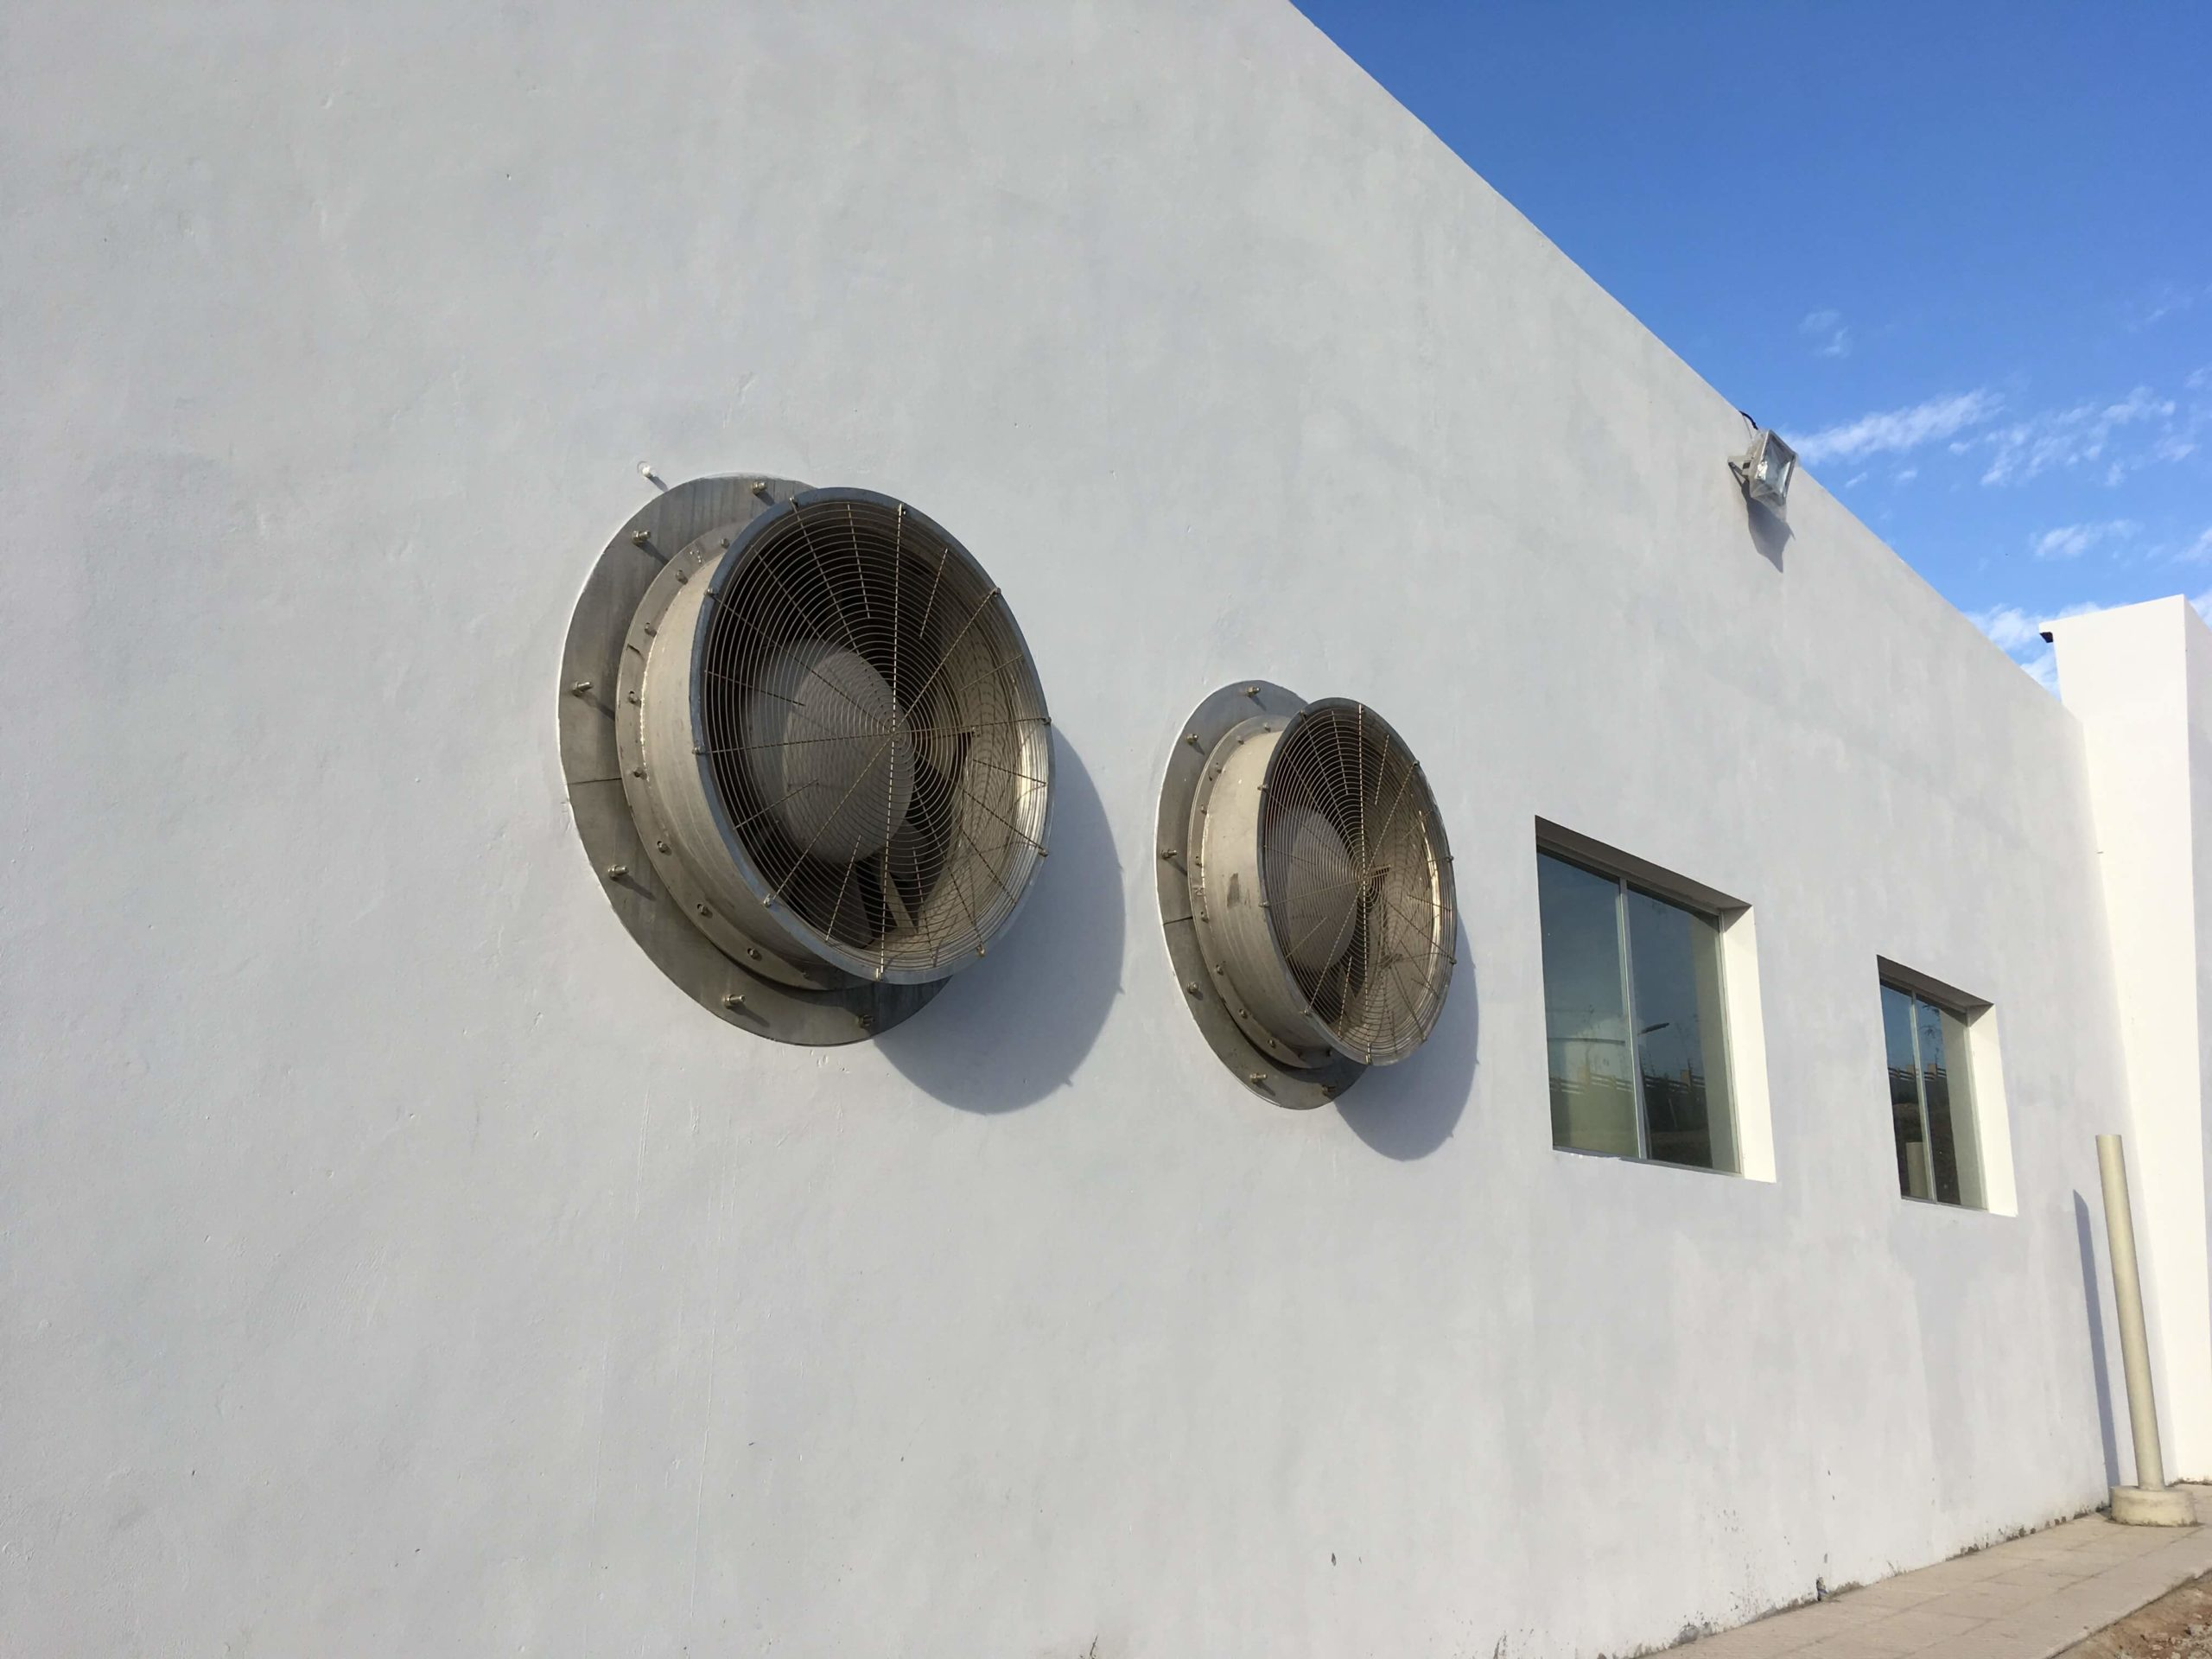 Outside view of two fans